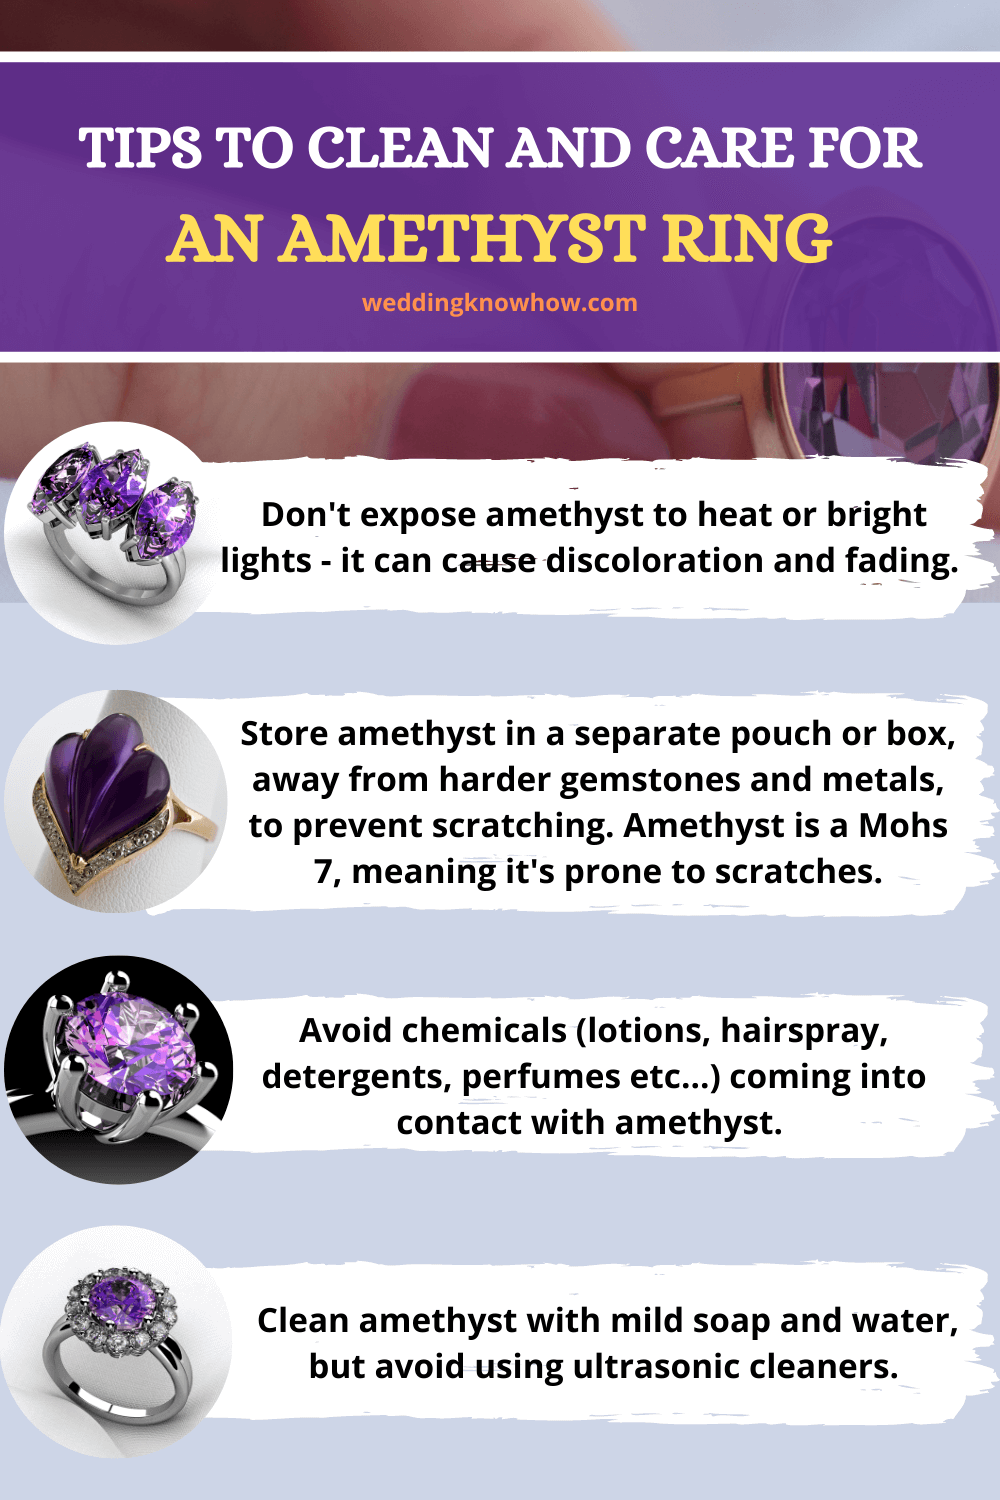 Cleaning and caring for amethyst